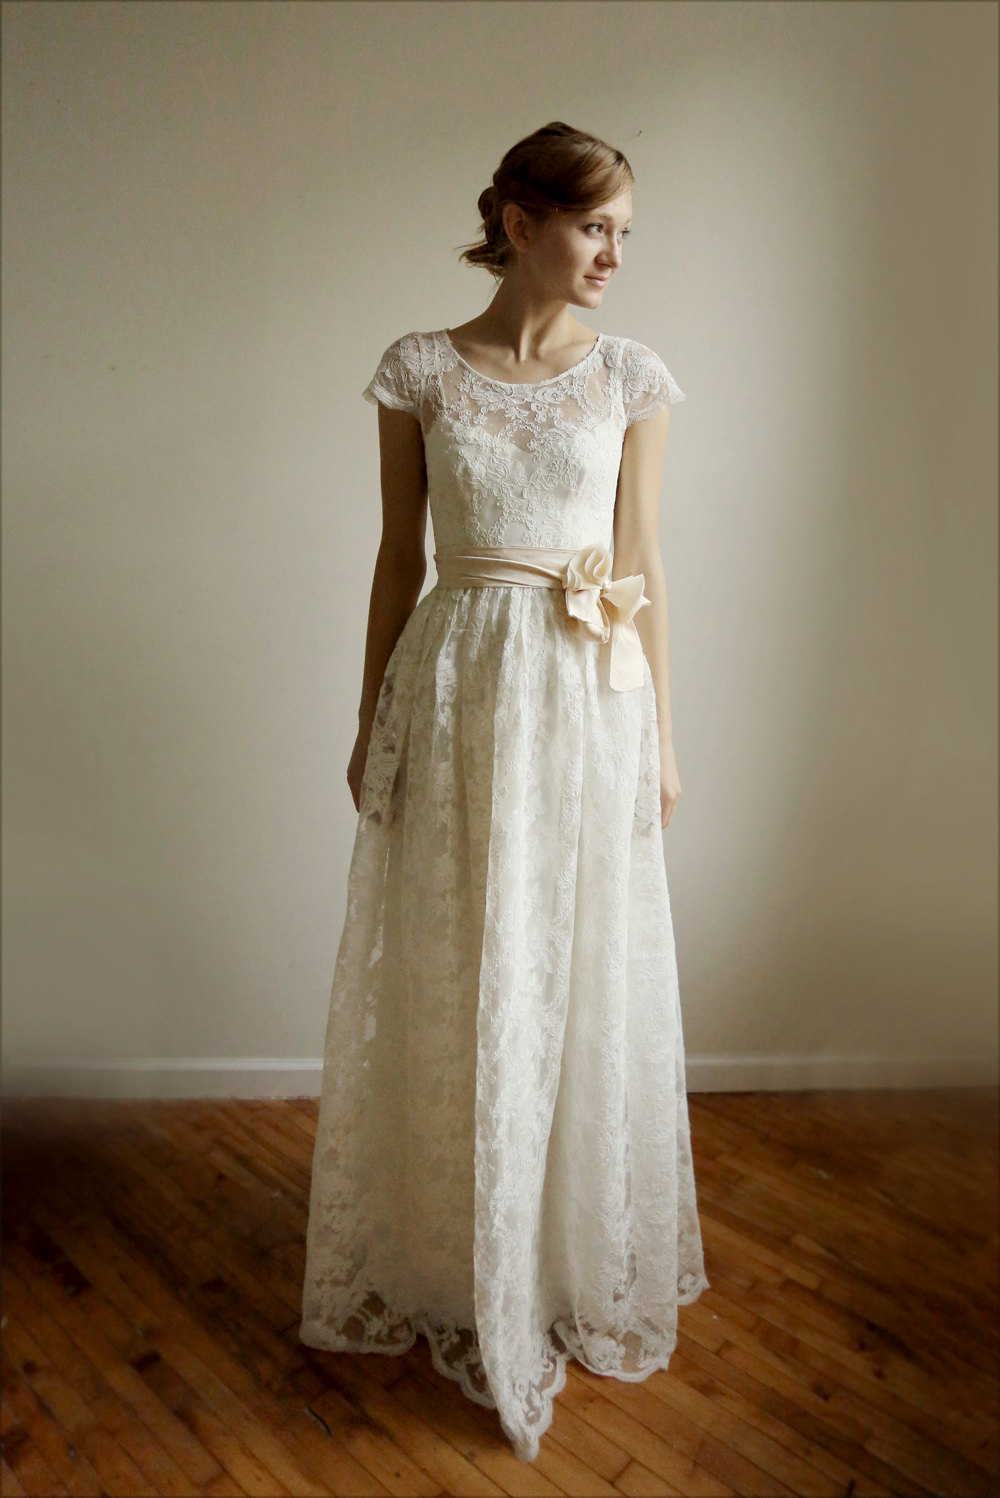 20 gowns vintage wedding